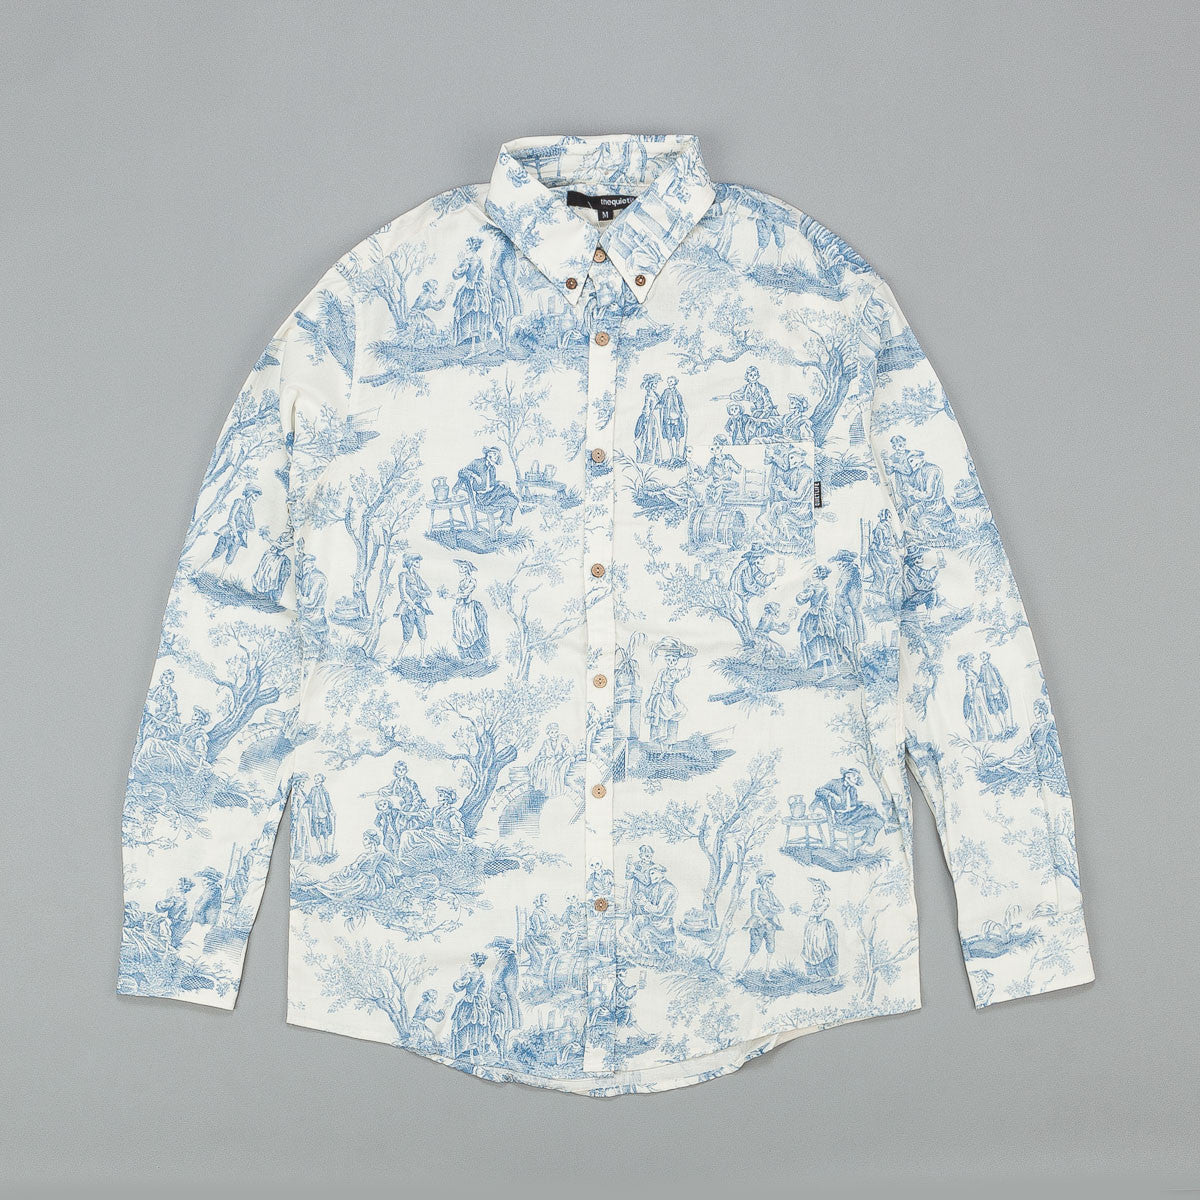 The Quiet Life Toile Shirt